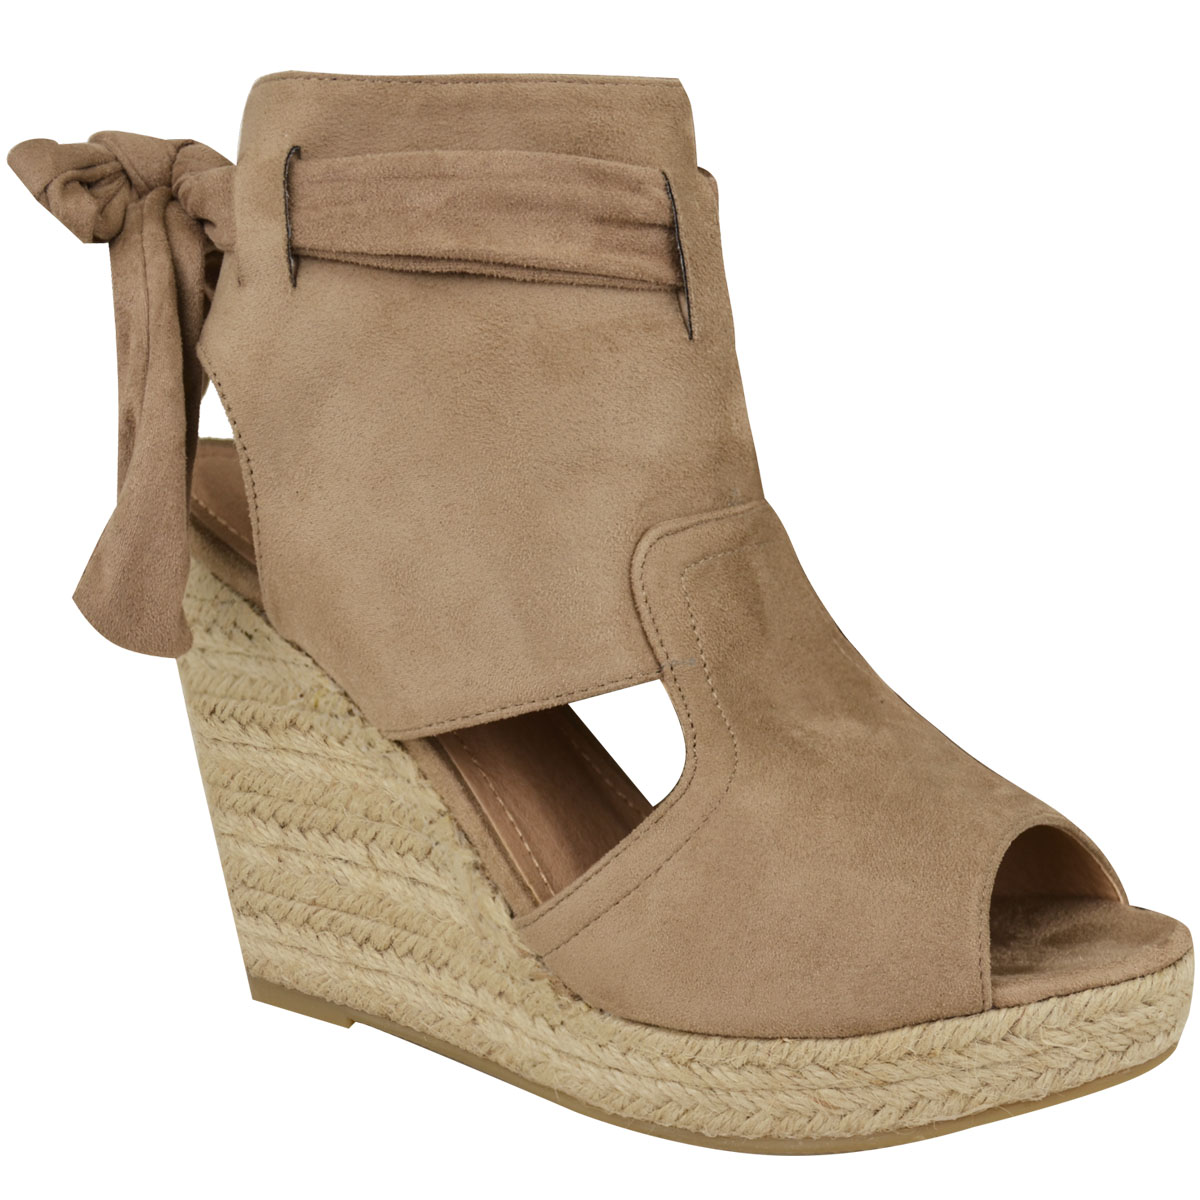 Strappy Ankle Tie Wedge Sandals